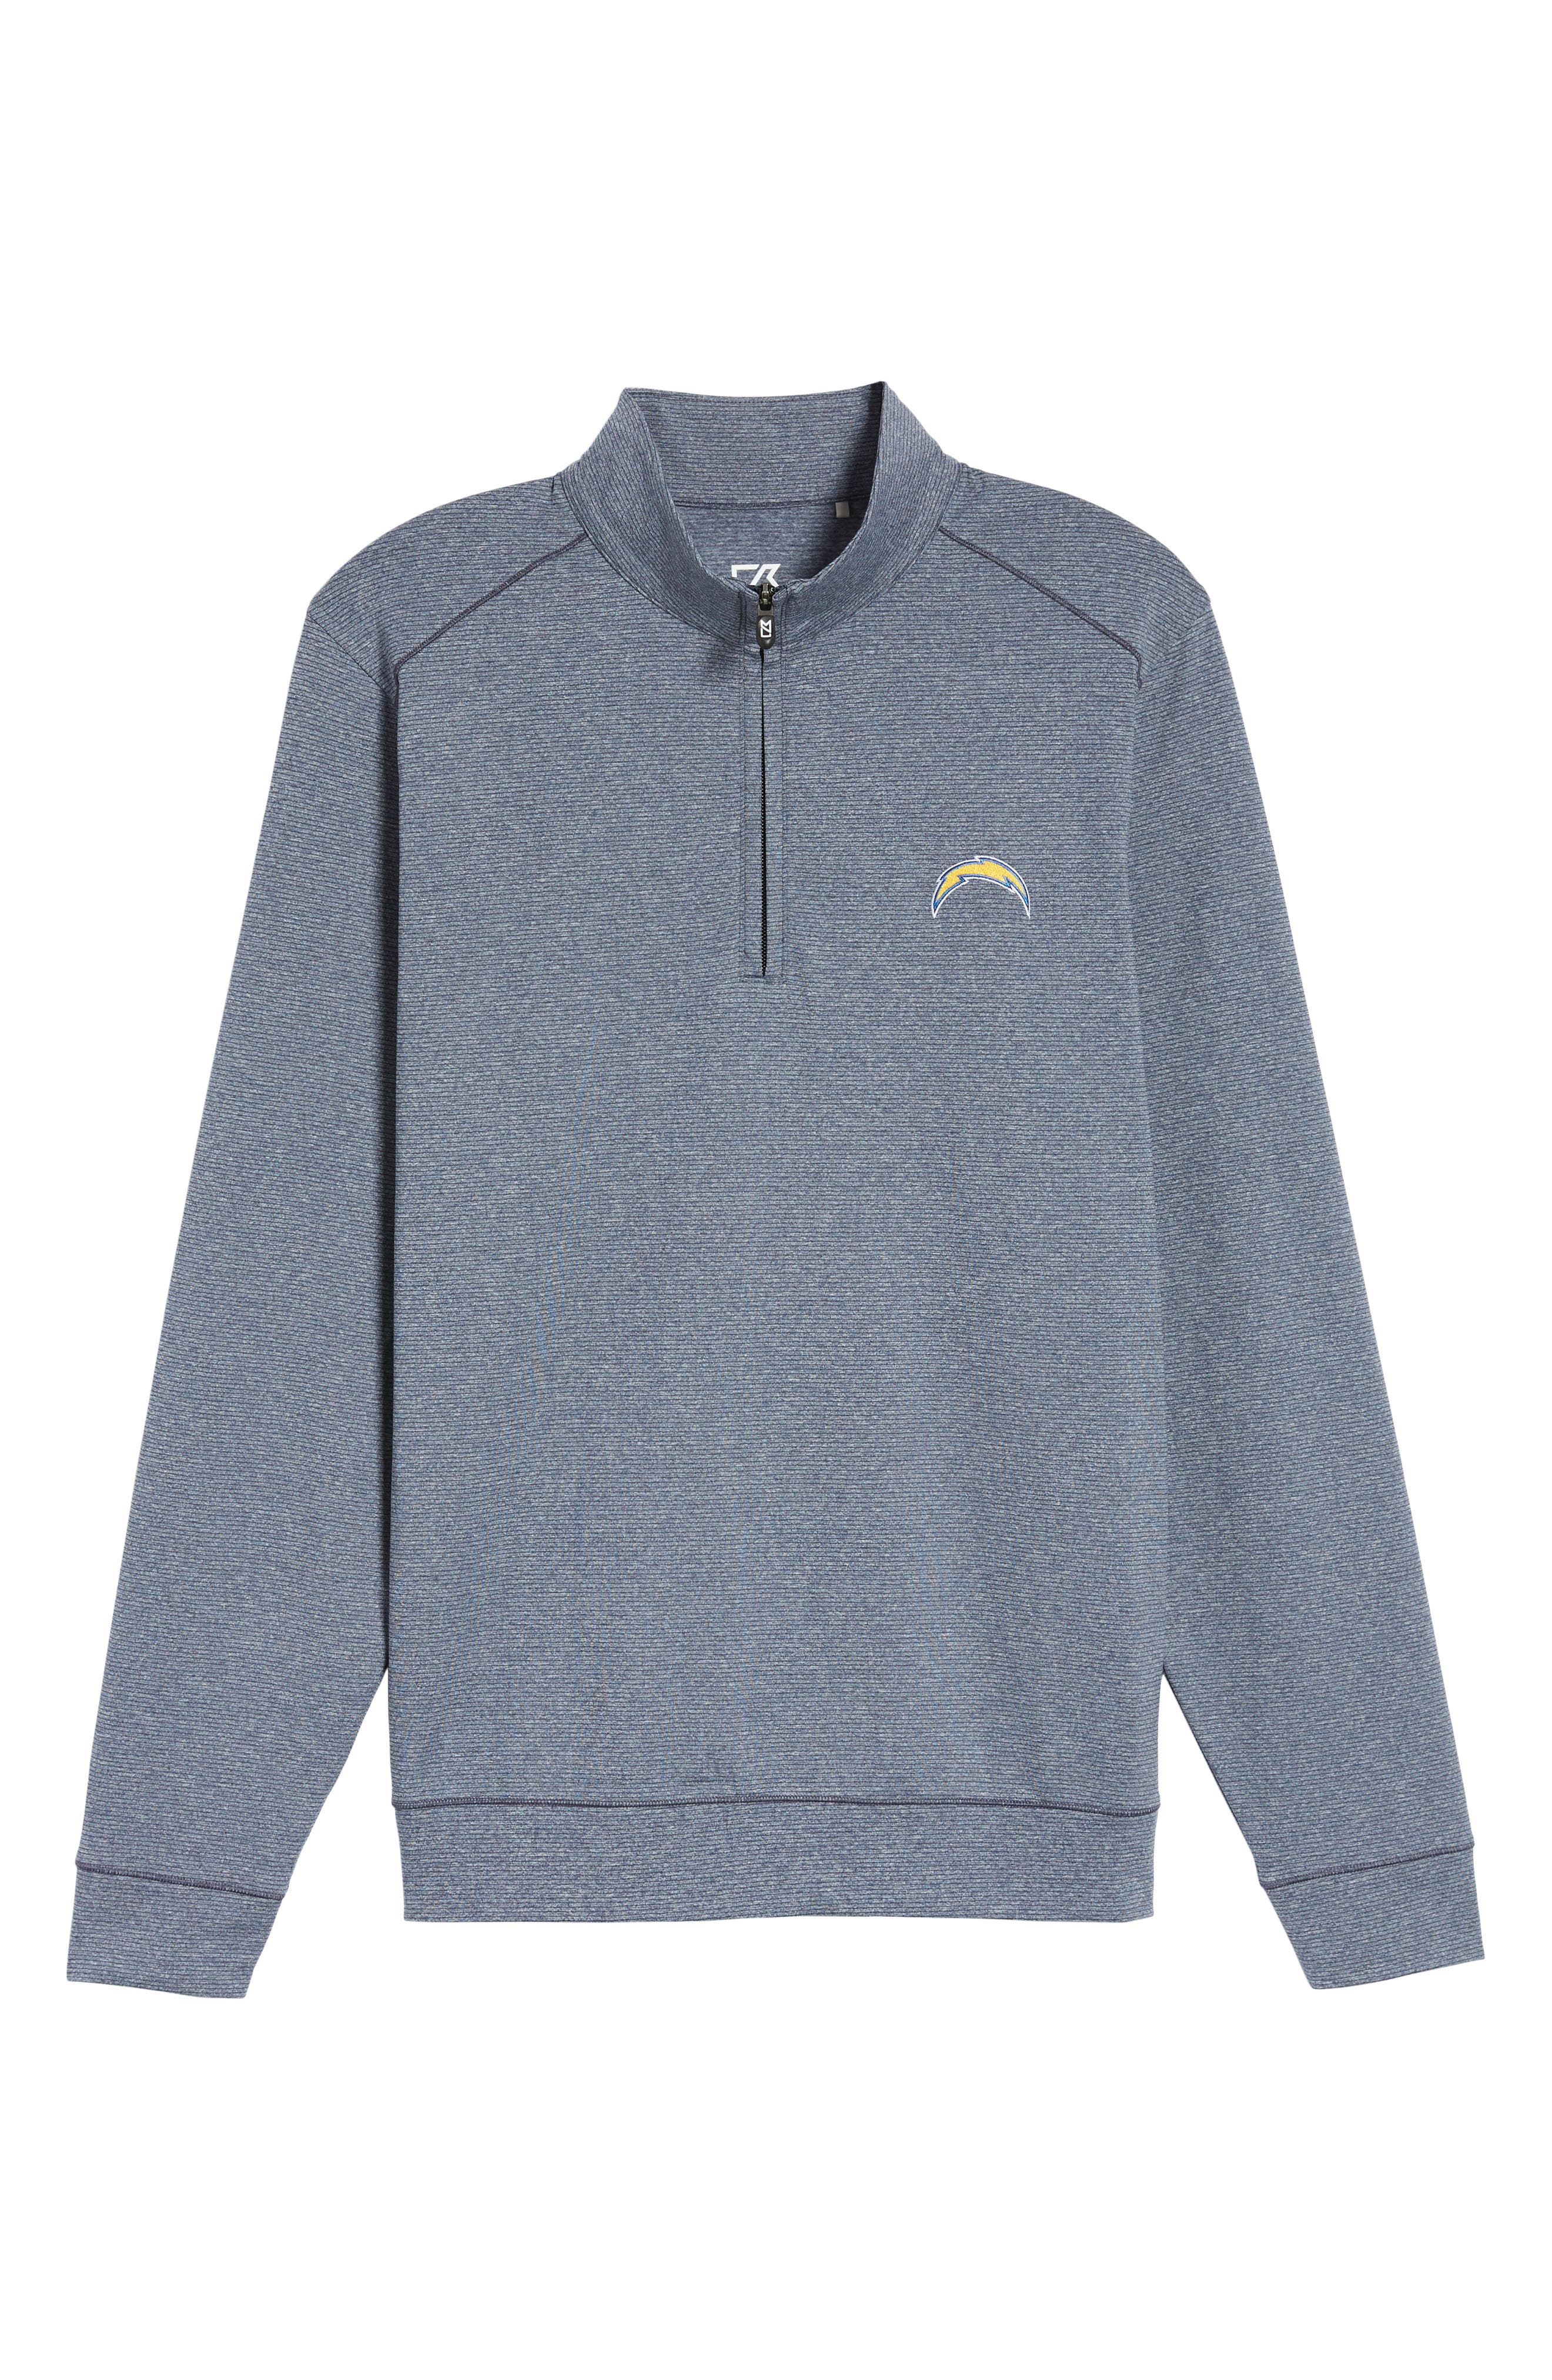 Shoreline - Los Angeles Chargers Half Zip Pullover,                             Alternate thumbnail 6, color,                             Liberty Navy Heather